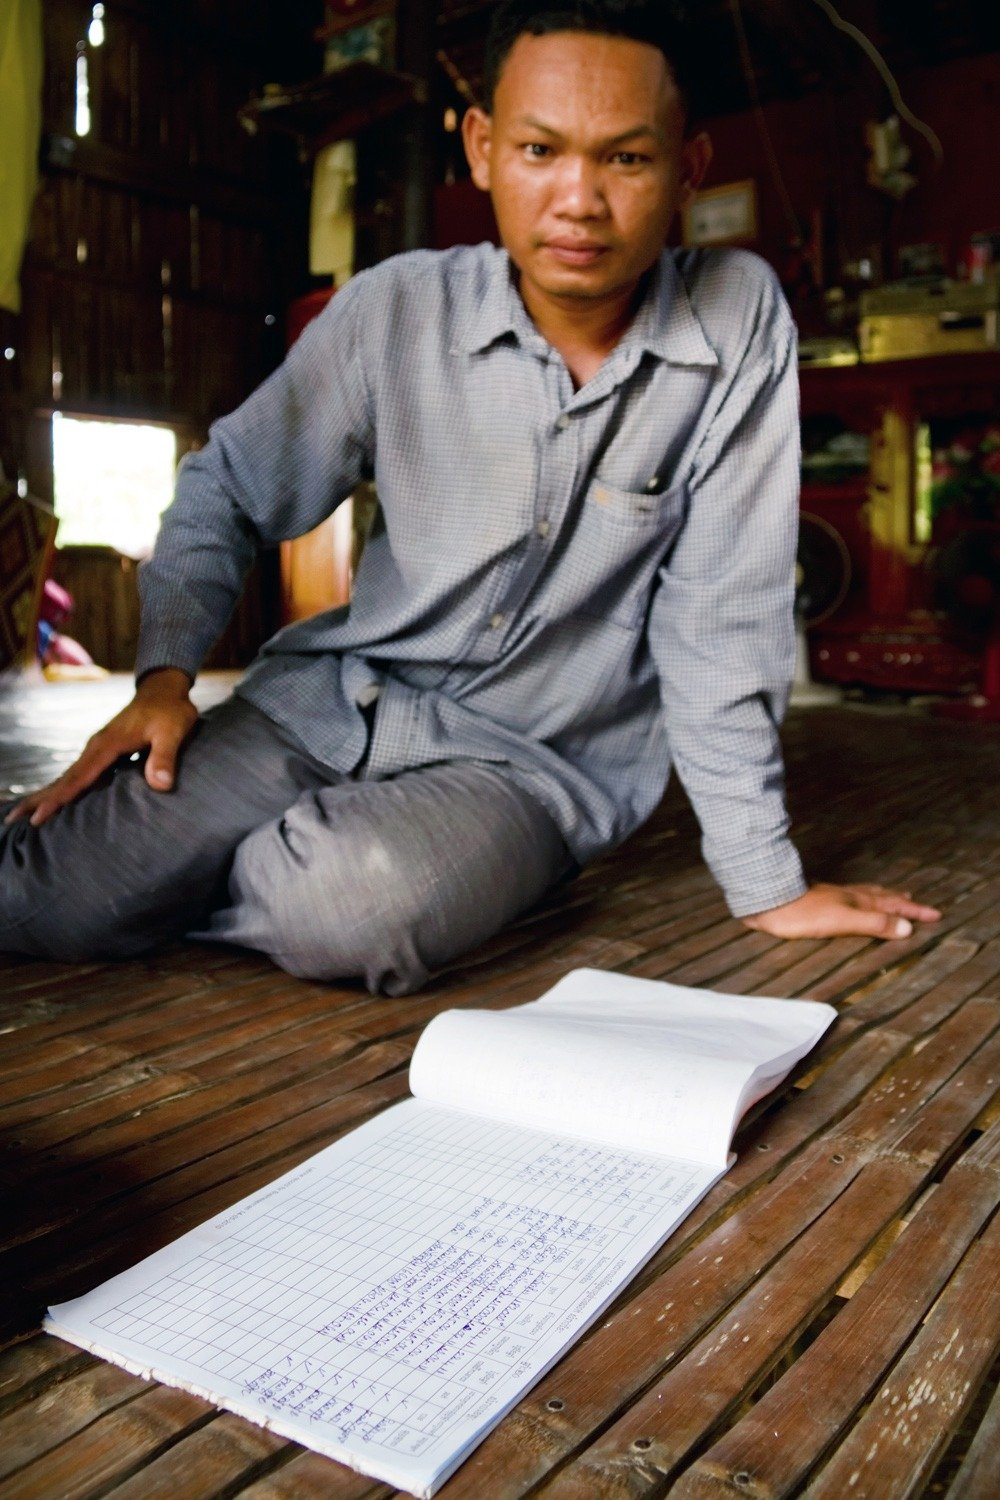 A business owner shows his toilet order log. Accurately documenting latrine transactions makes deliveries faster and more reliable, helps enterprises access formal credit, and assists WaterSHED to monitor the program effectiveness.